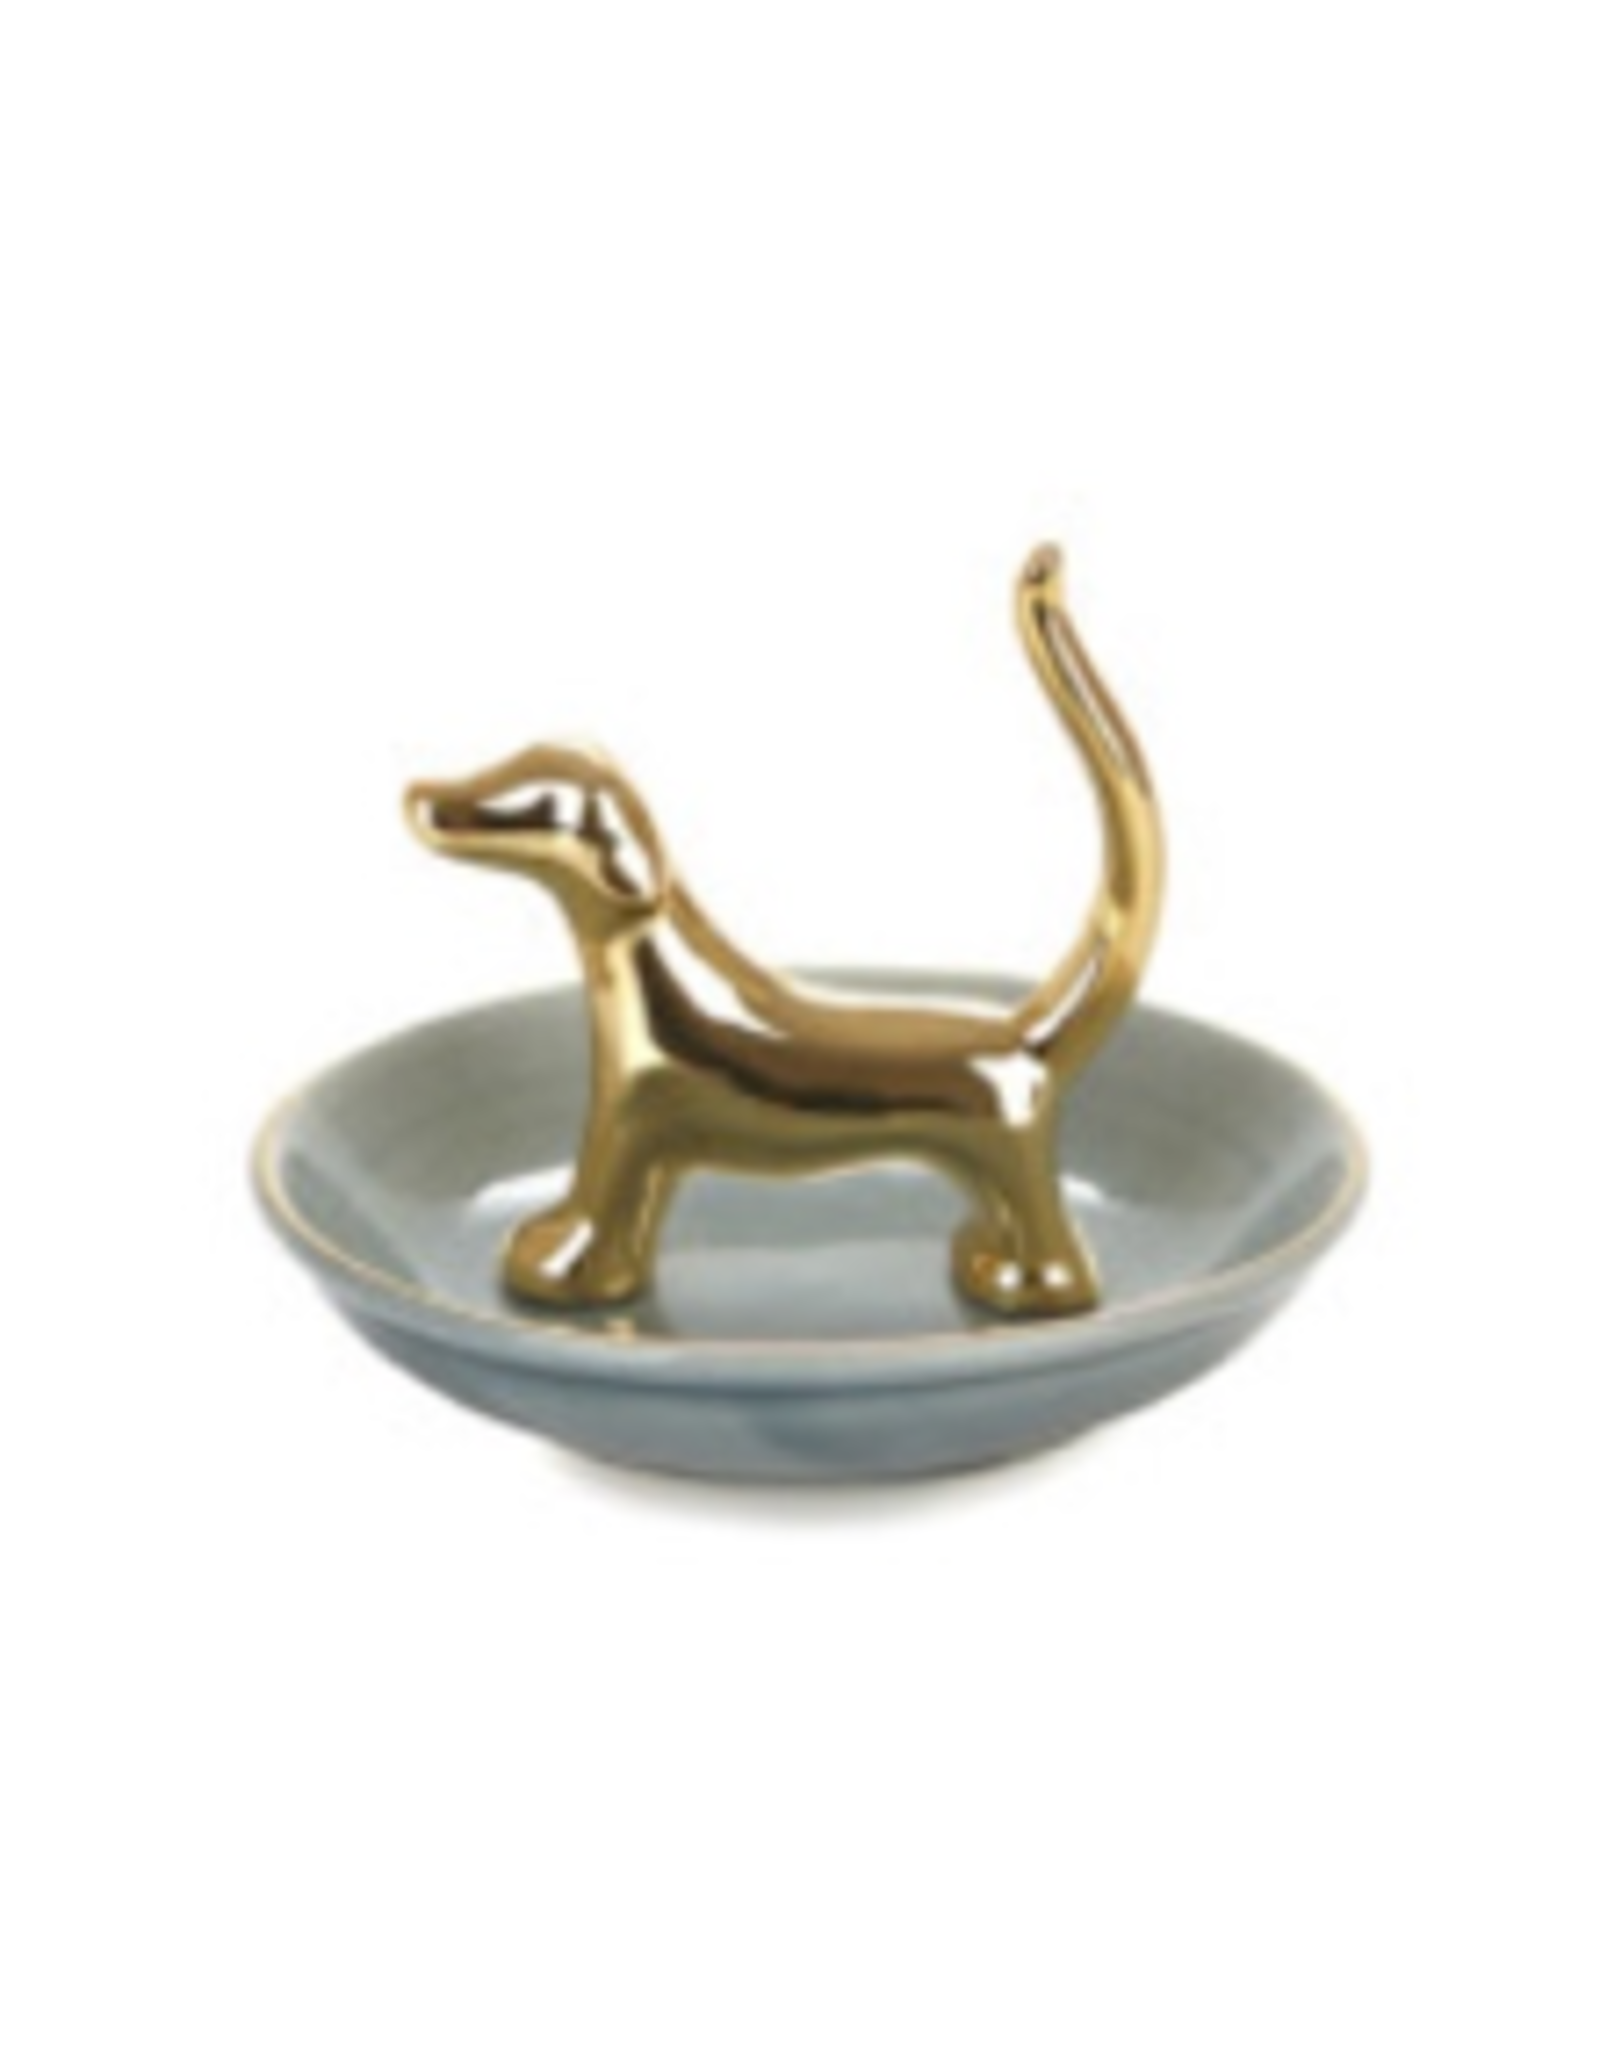 ring holder in the shape of a dog